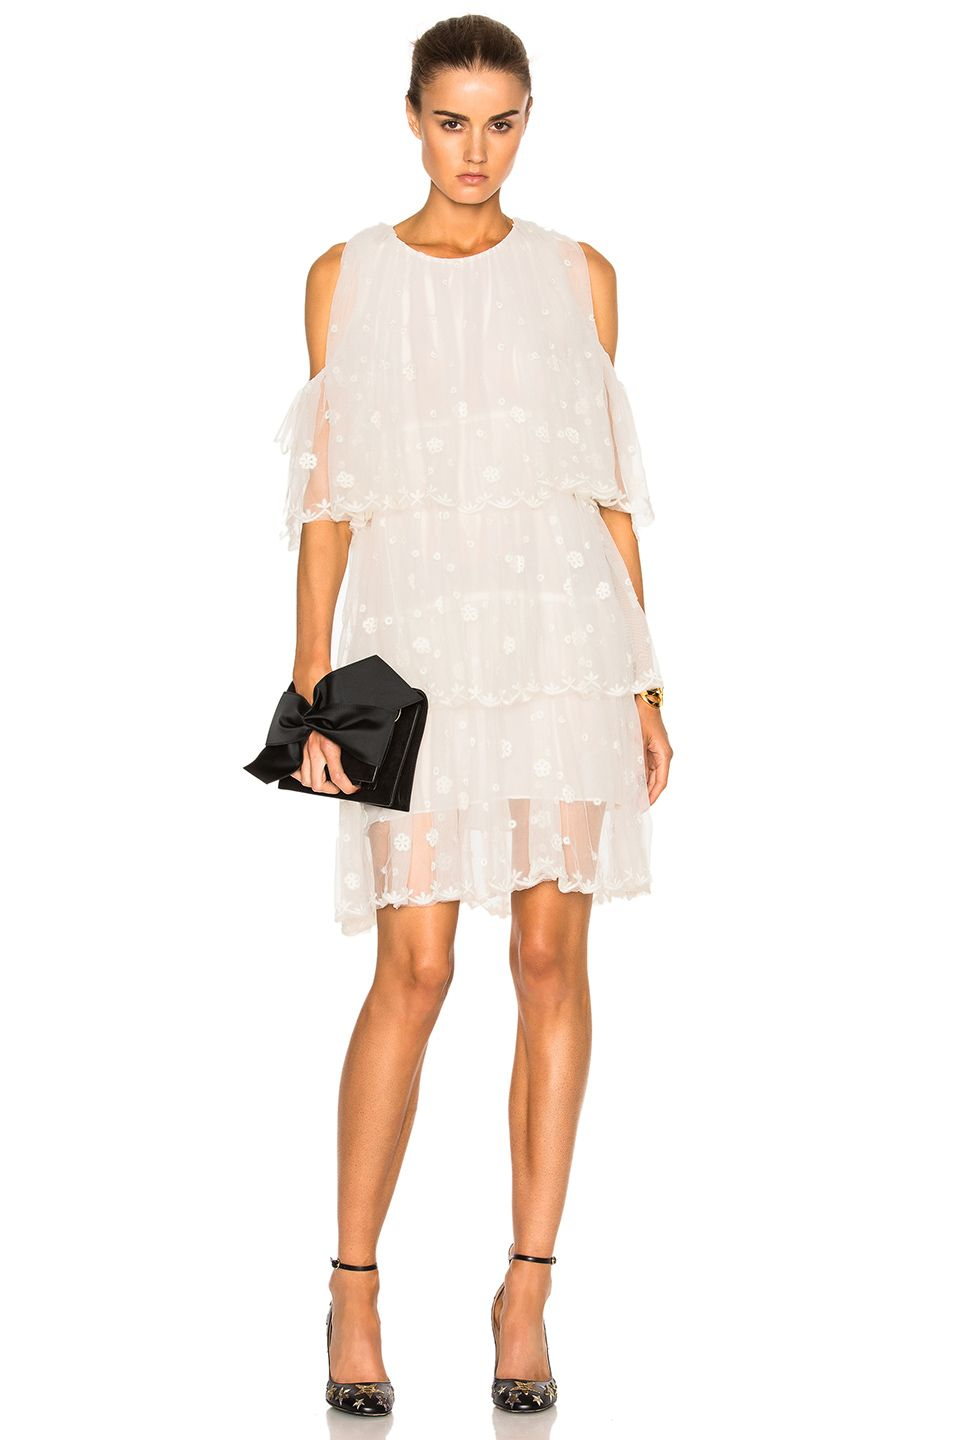 Naoko Alice Items Dress in White Isabel Marant Low Shipping Cheap Online Outlet For Nice MKnZfPgFdP